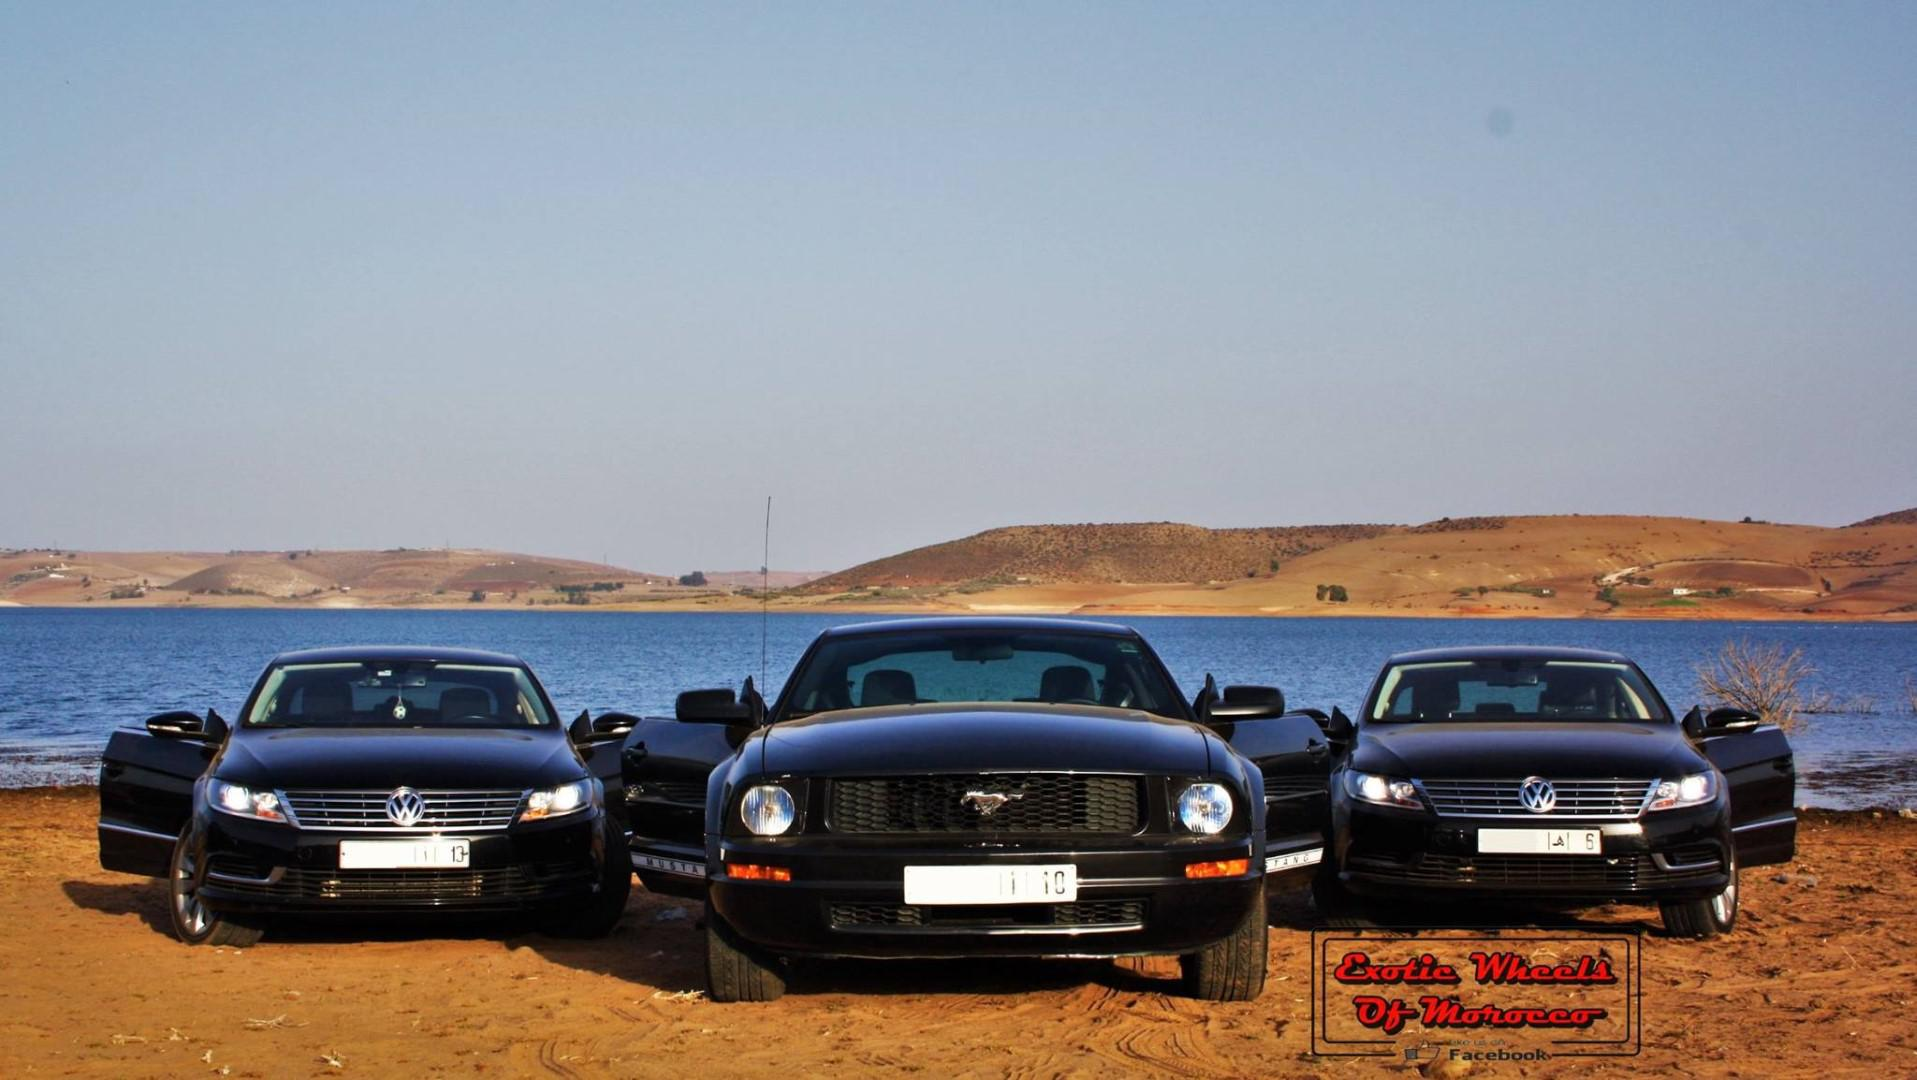 qui-connait-les-exotic-wheels-of-morocco-265-4.jpg